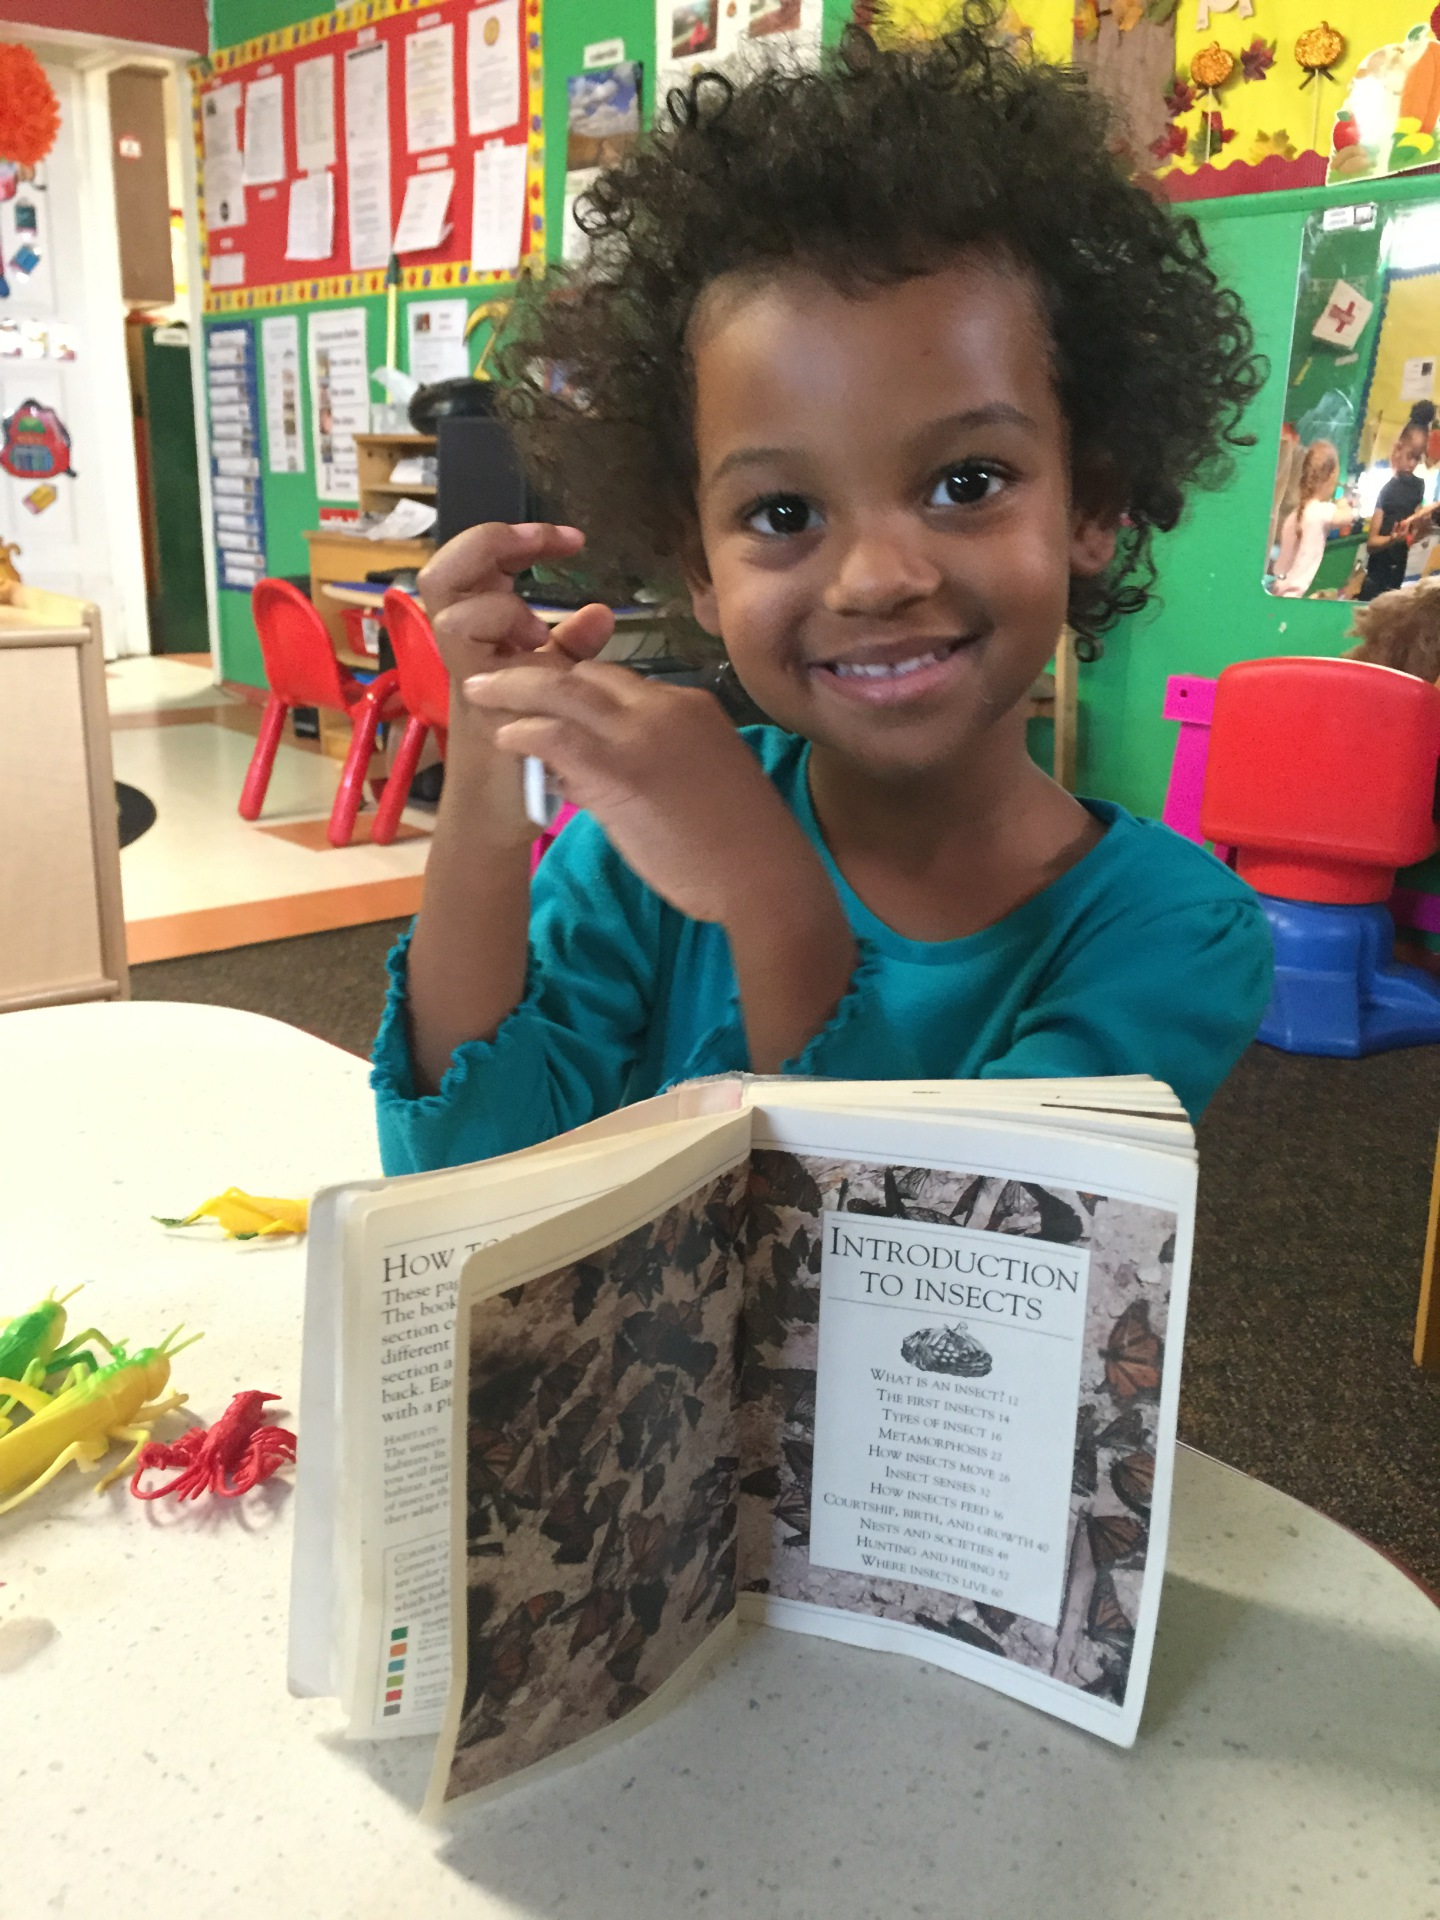 Children learn and explore with hands-on activities